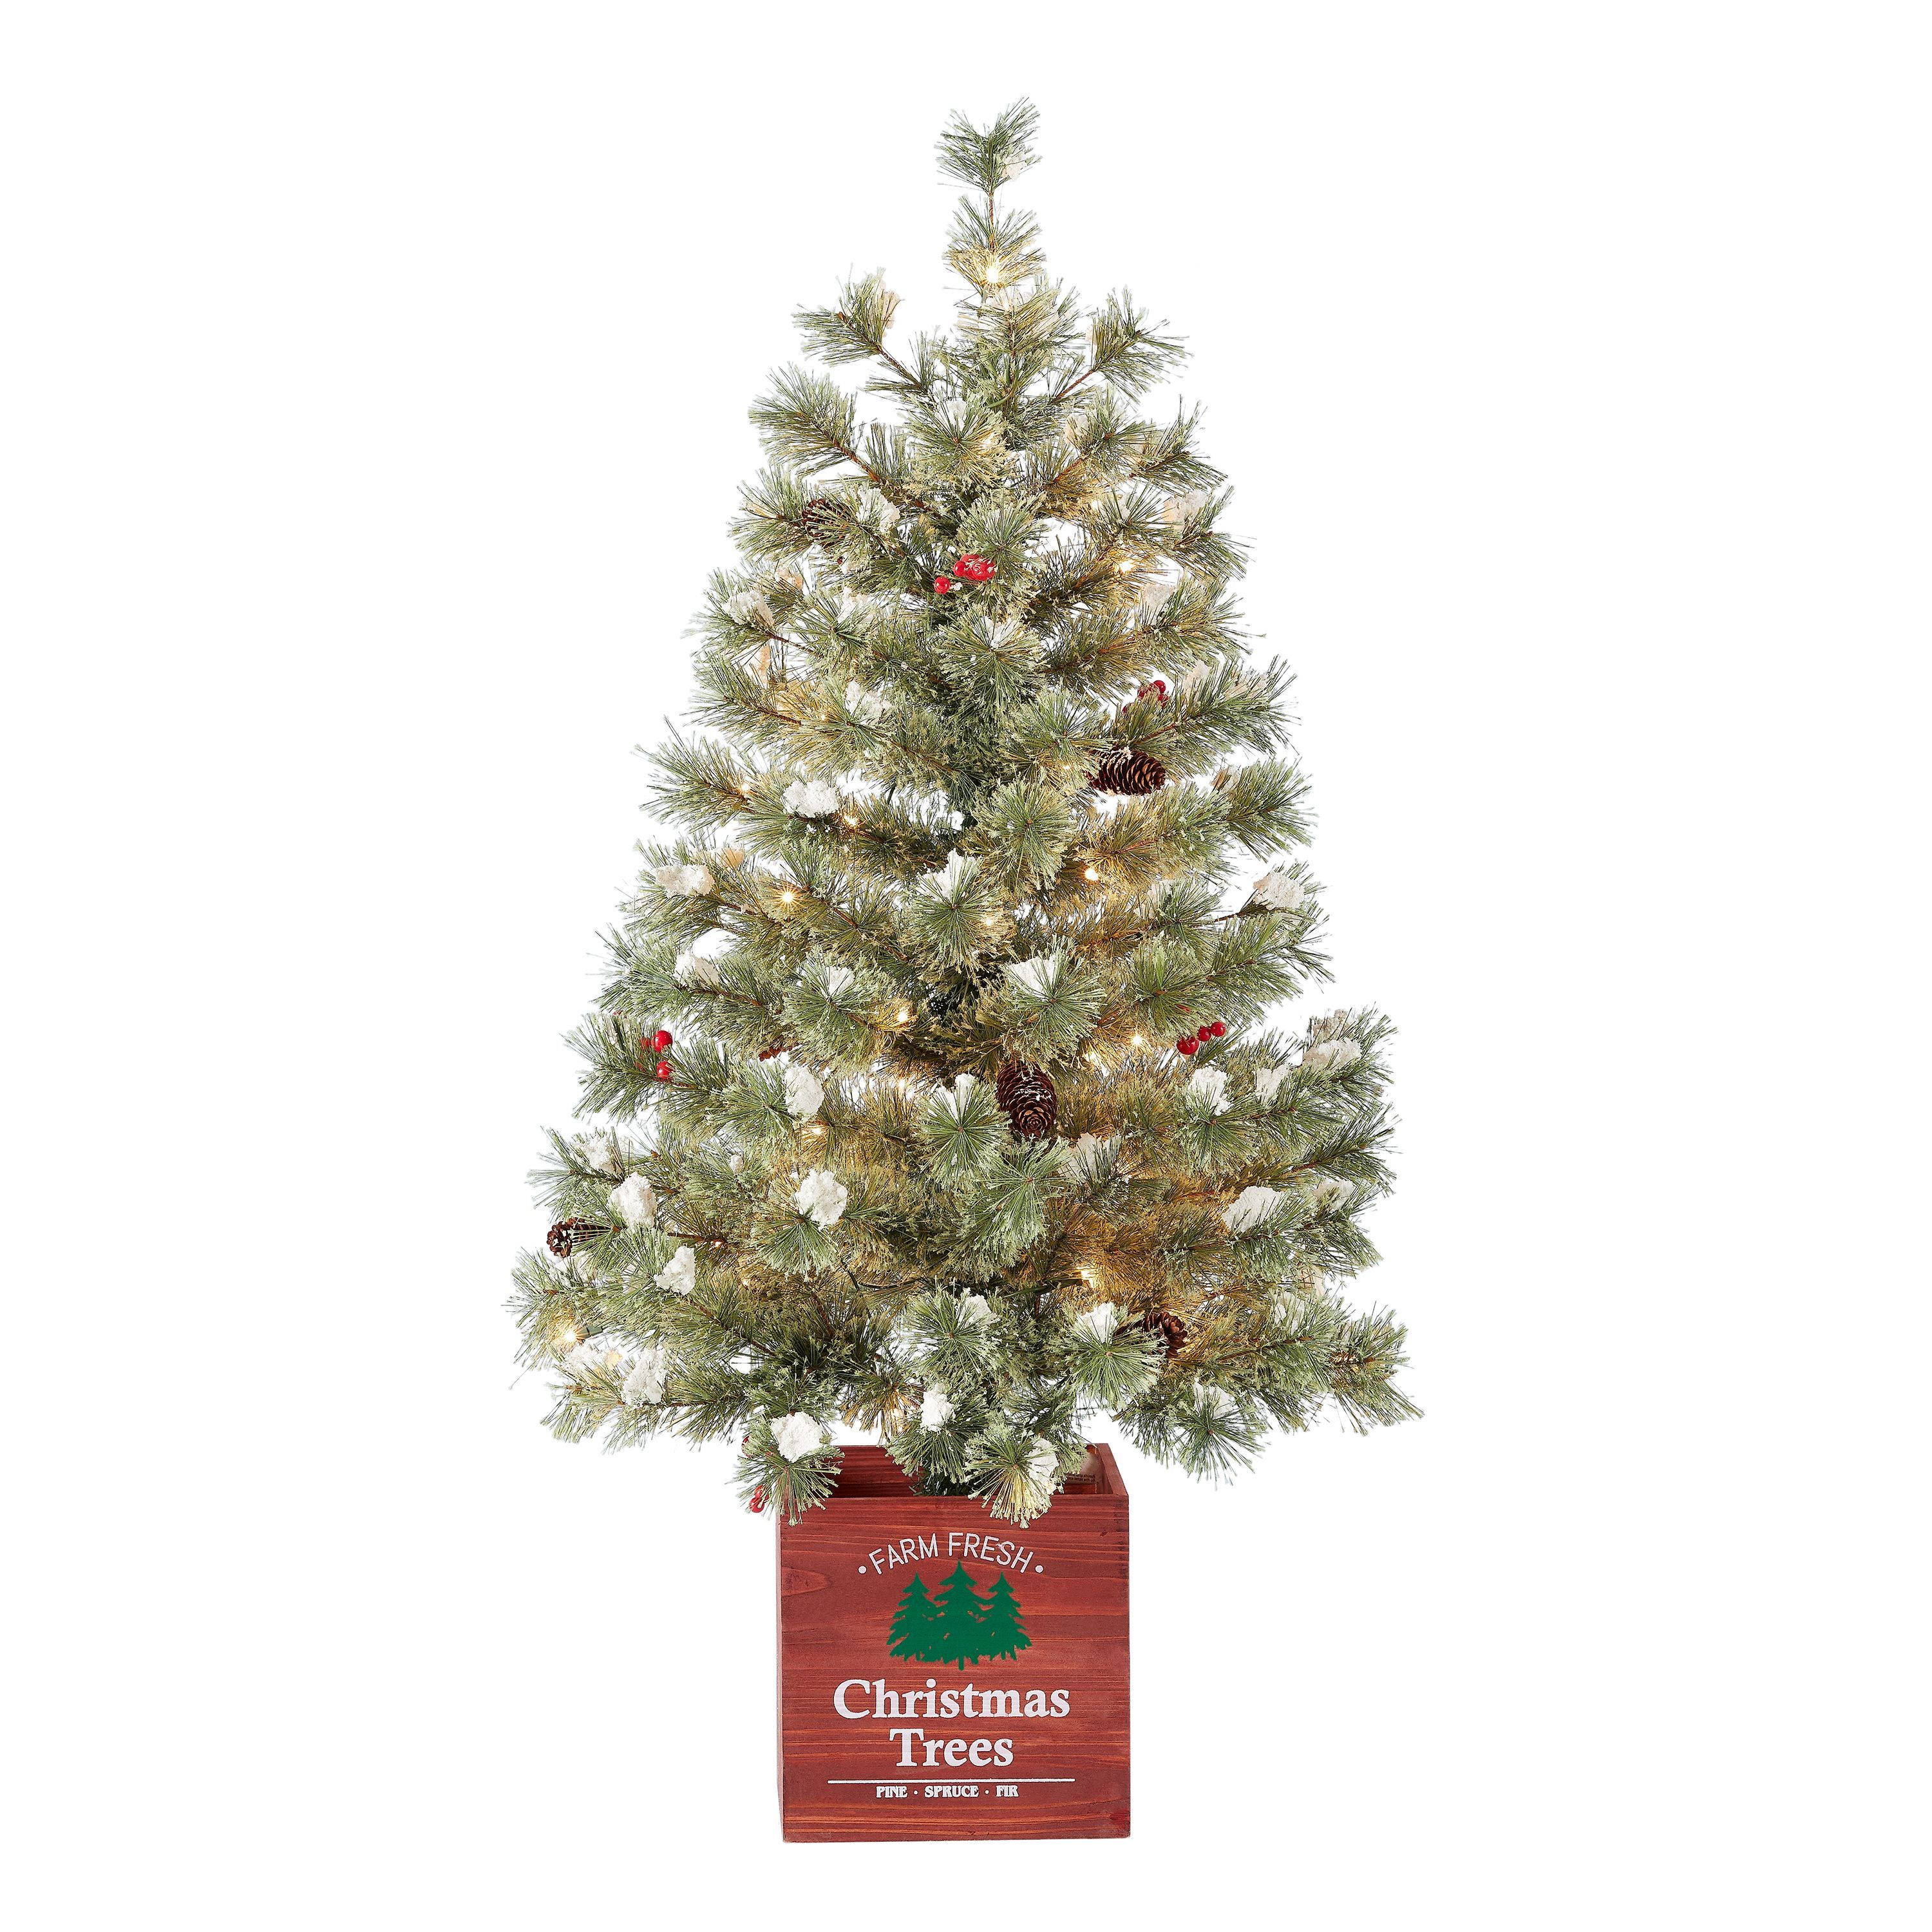 Holiday Time Pre Lit Porch Christmas Tree In Wood Pot White Lights Green Color 3 5 Walmart Com In 2020 Porch Christmas Tree Pre Lit Christmas Tree Pine Christmas Tree